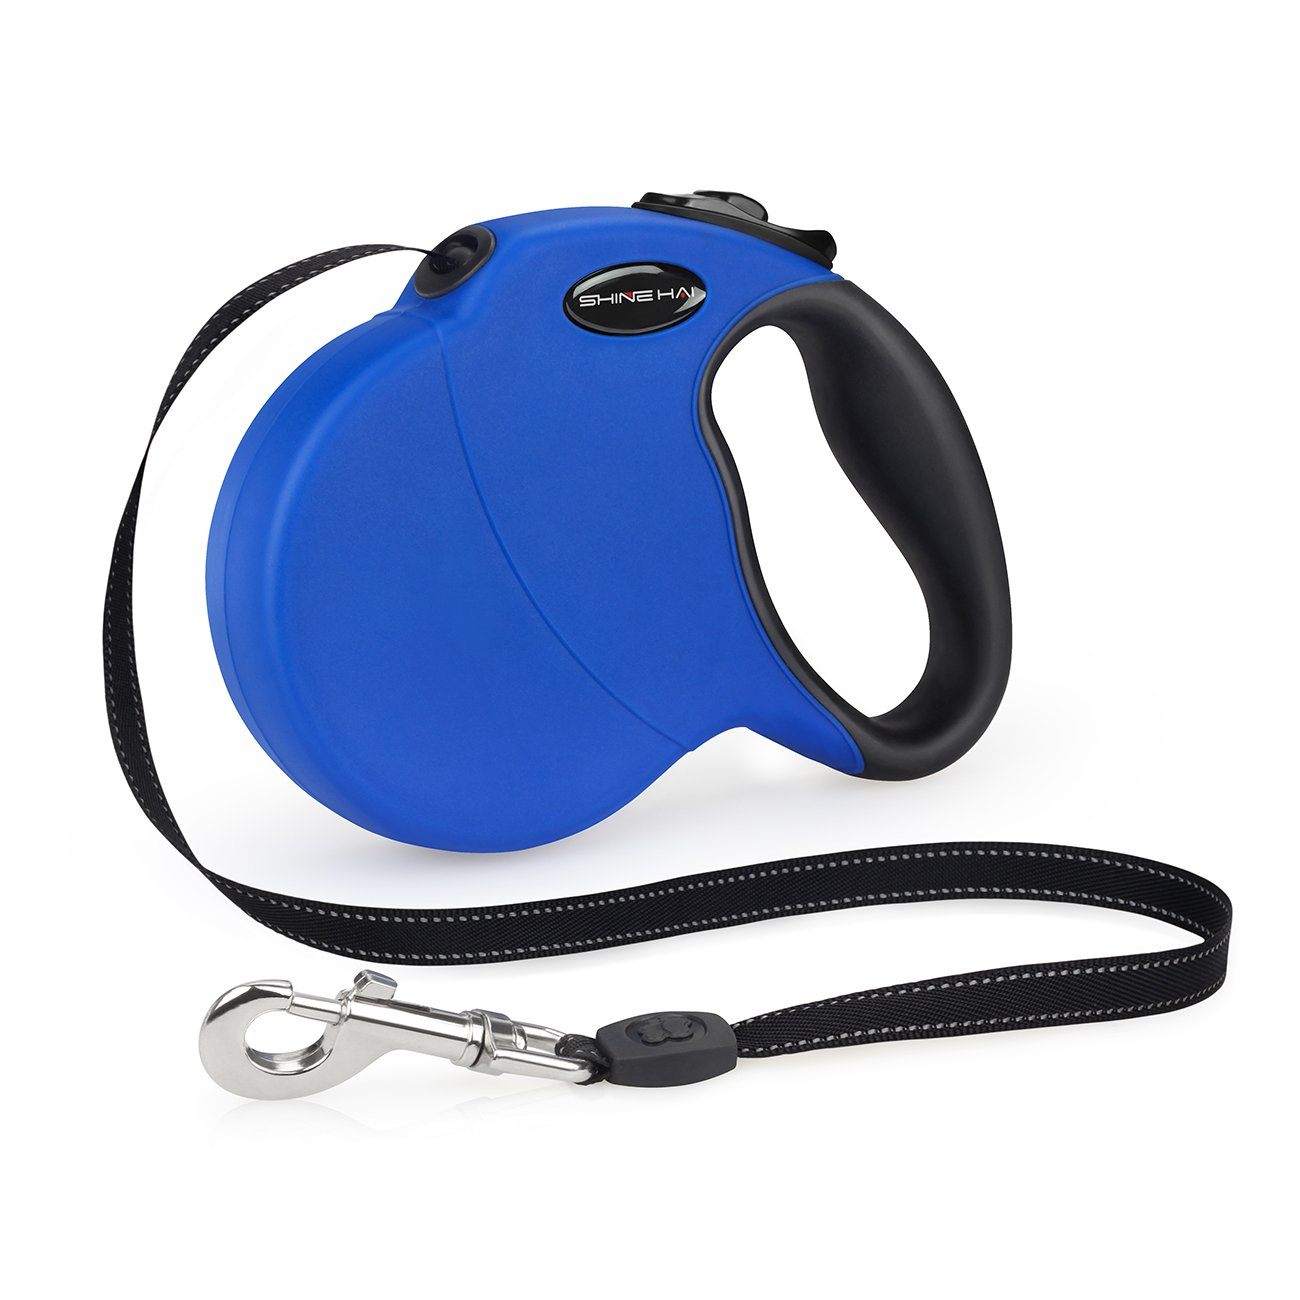 SHINE HAI Retractable Dog Leash, 16ft Dog Walking Leash for Large Medium Small Dog Up to 110lbs, Break & Lock System, Reflective Ribbon Cord, Blue by SHINE HAI